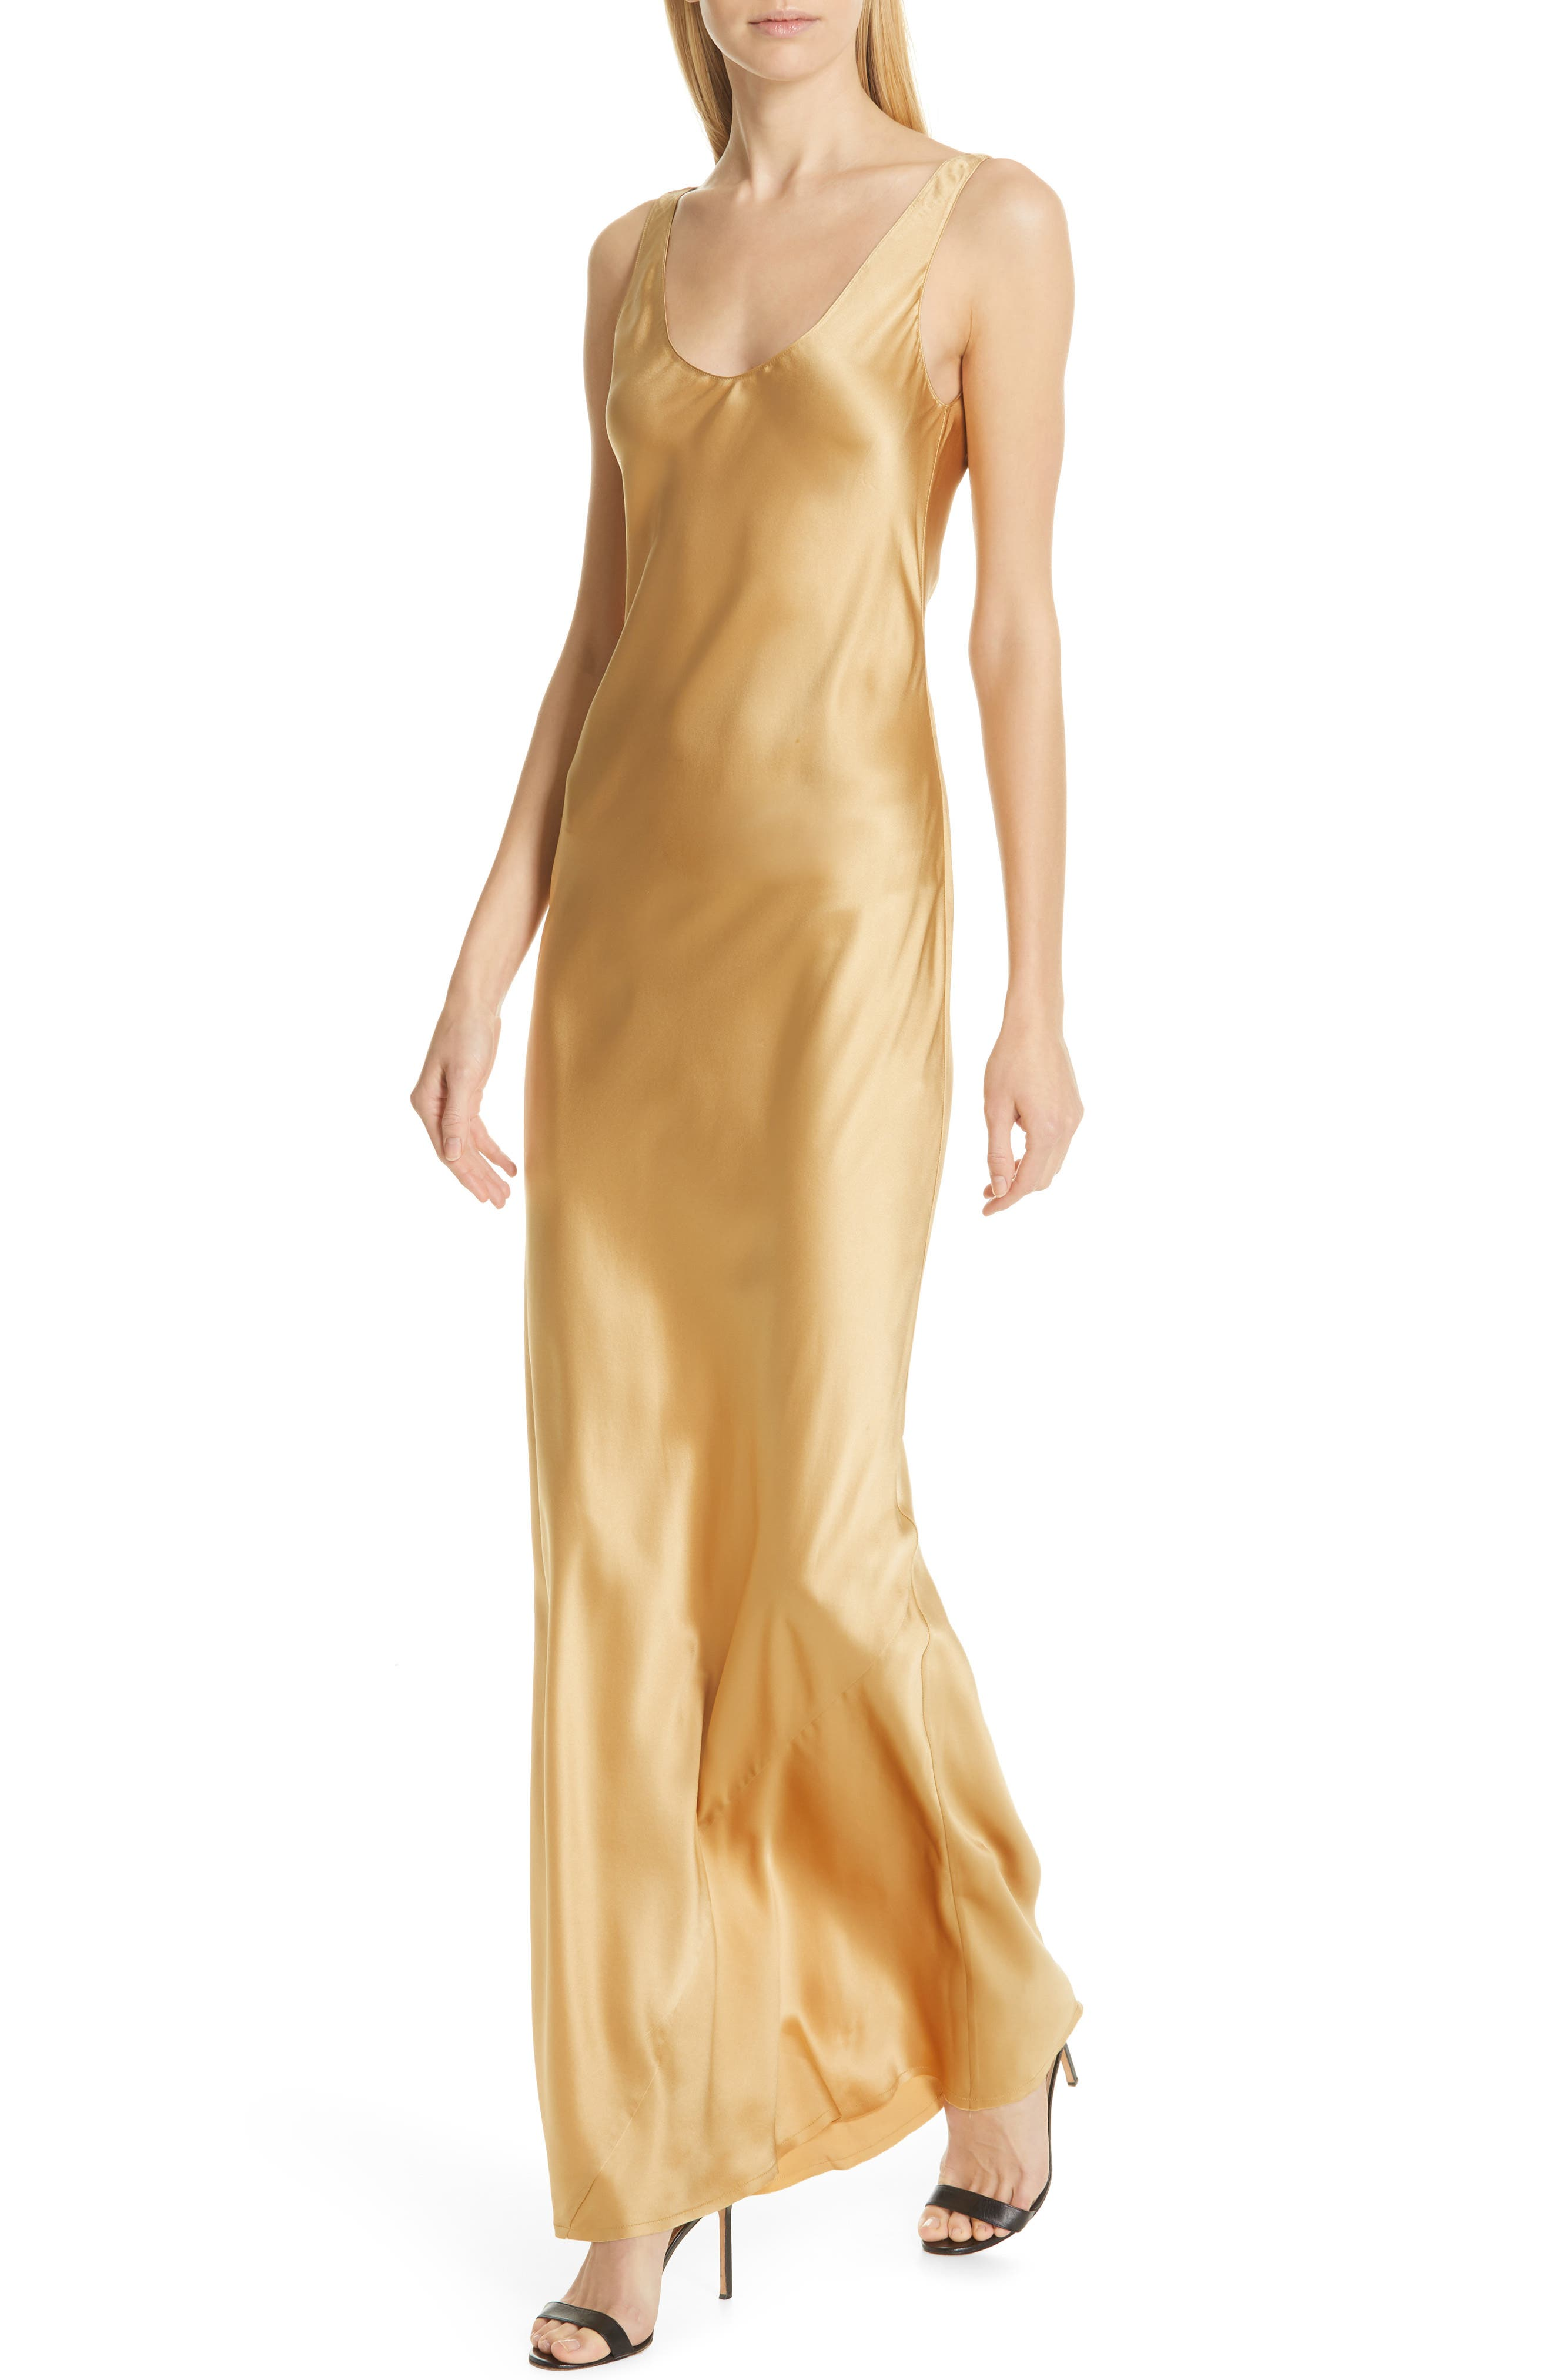 NILI LOTAN, Bazile Silk Evening Dress, Alternate thumbnail 4, color, GOLDEN